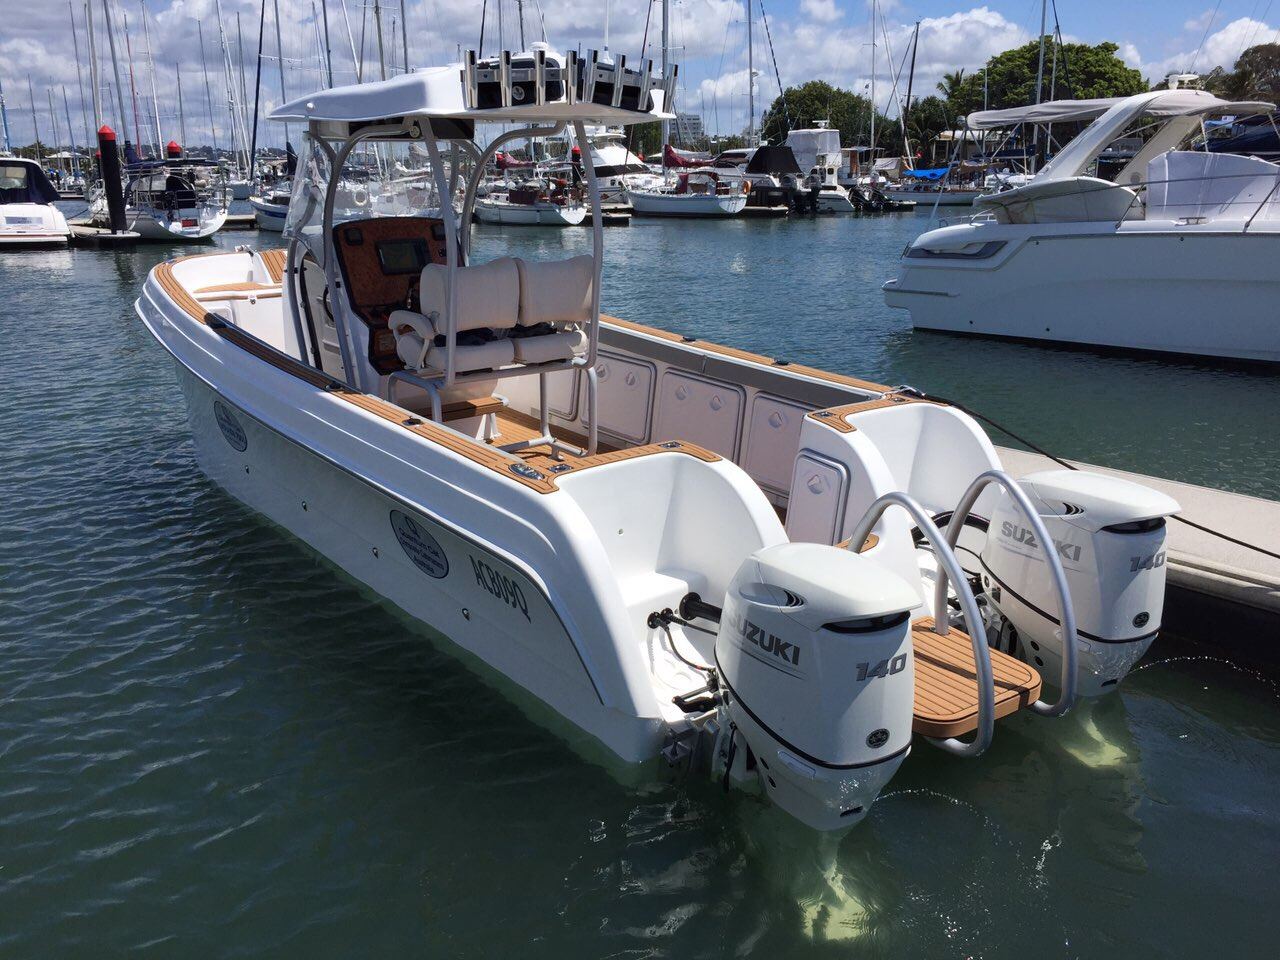 QCat Mirage 7000 On The Water